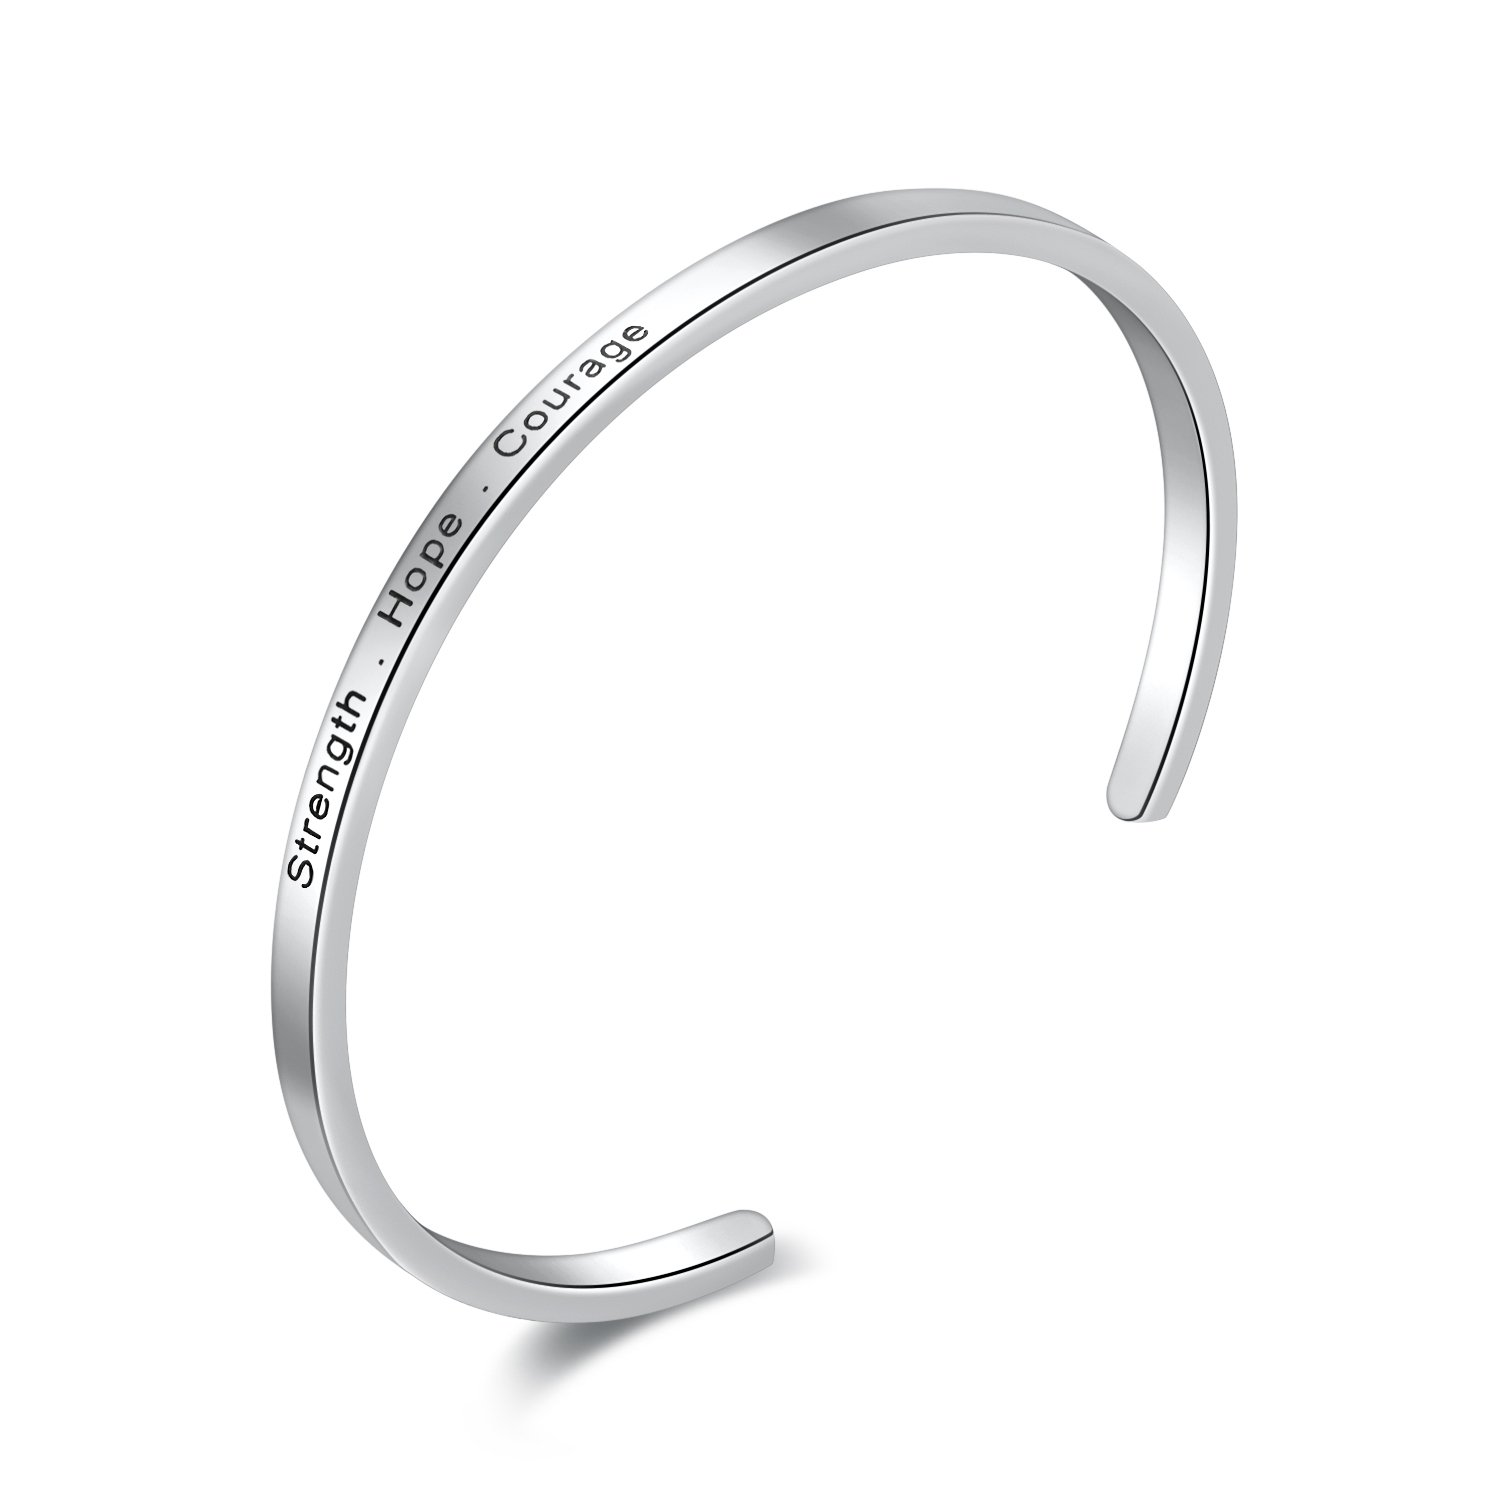 "Engraved ""Strength . Hope . Courage"" Inspirational Messaged Stainless Steel Cuff Bangle Bracelet"